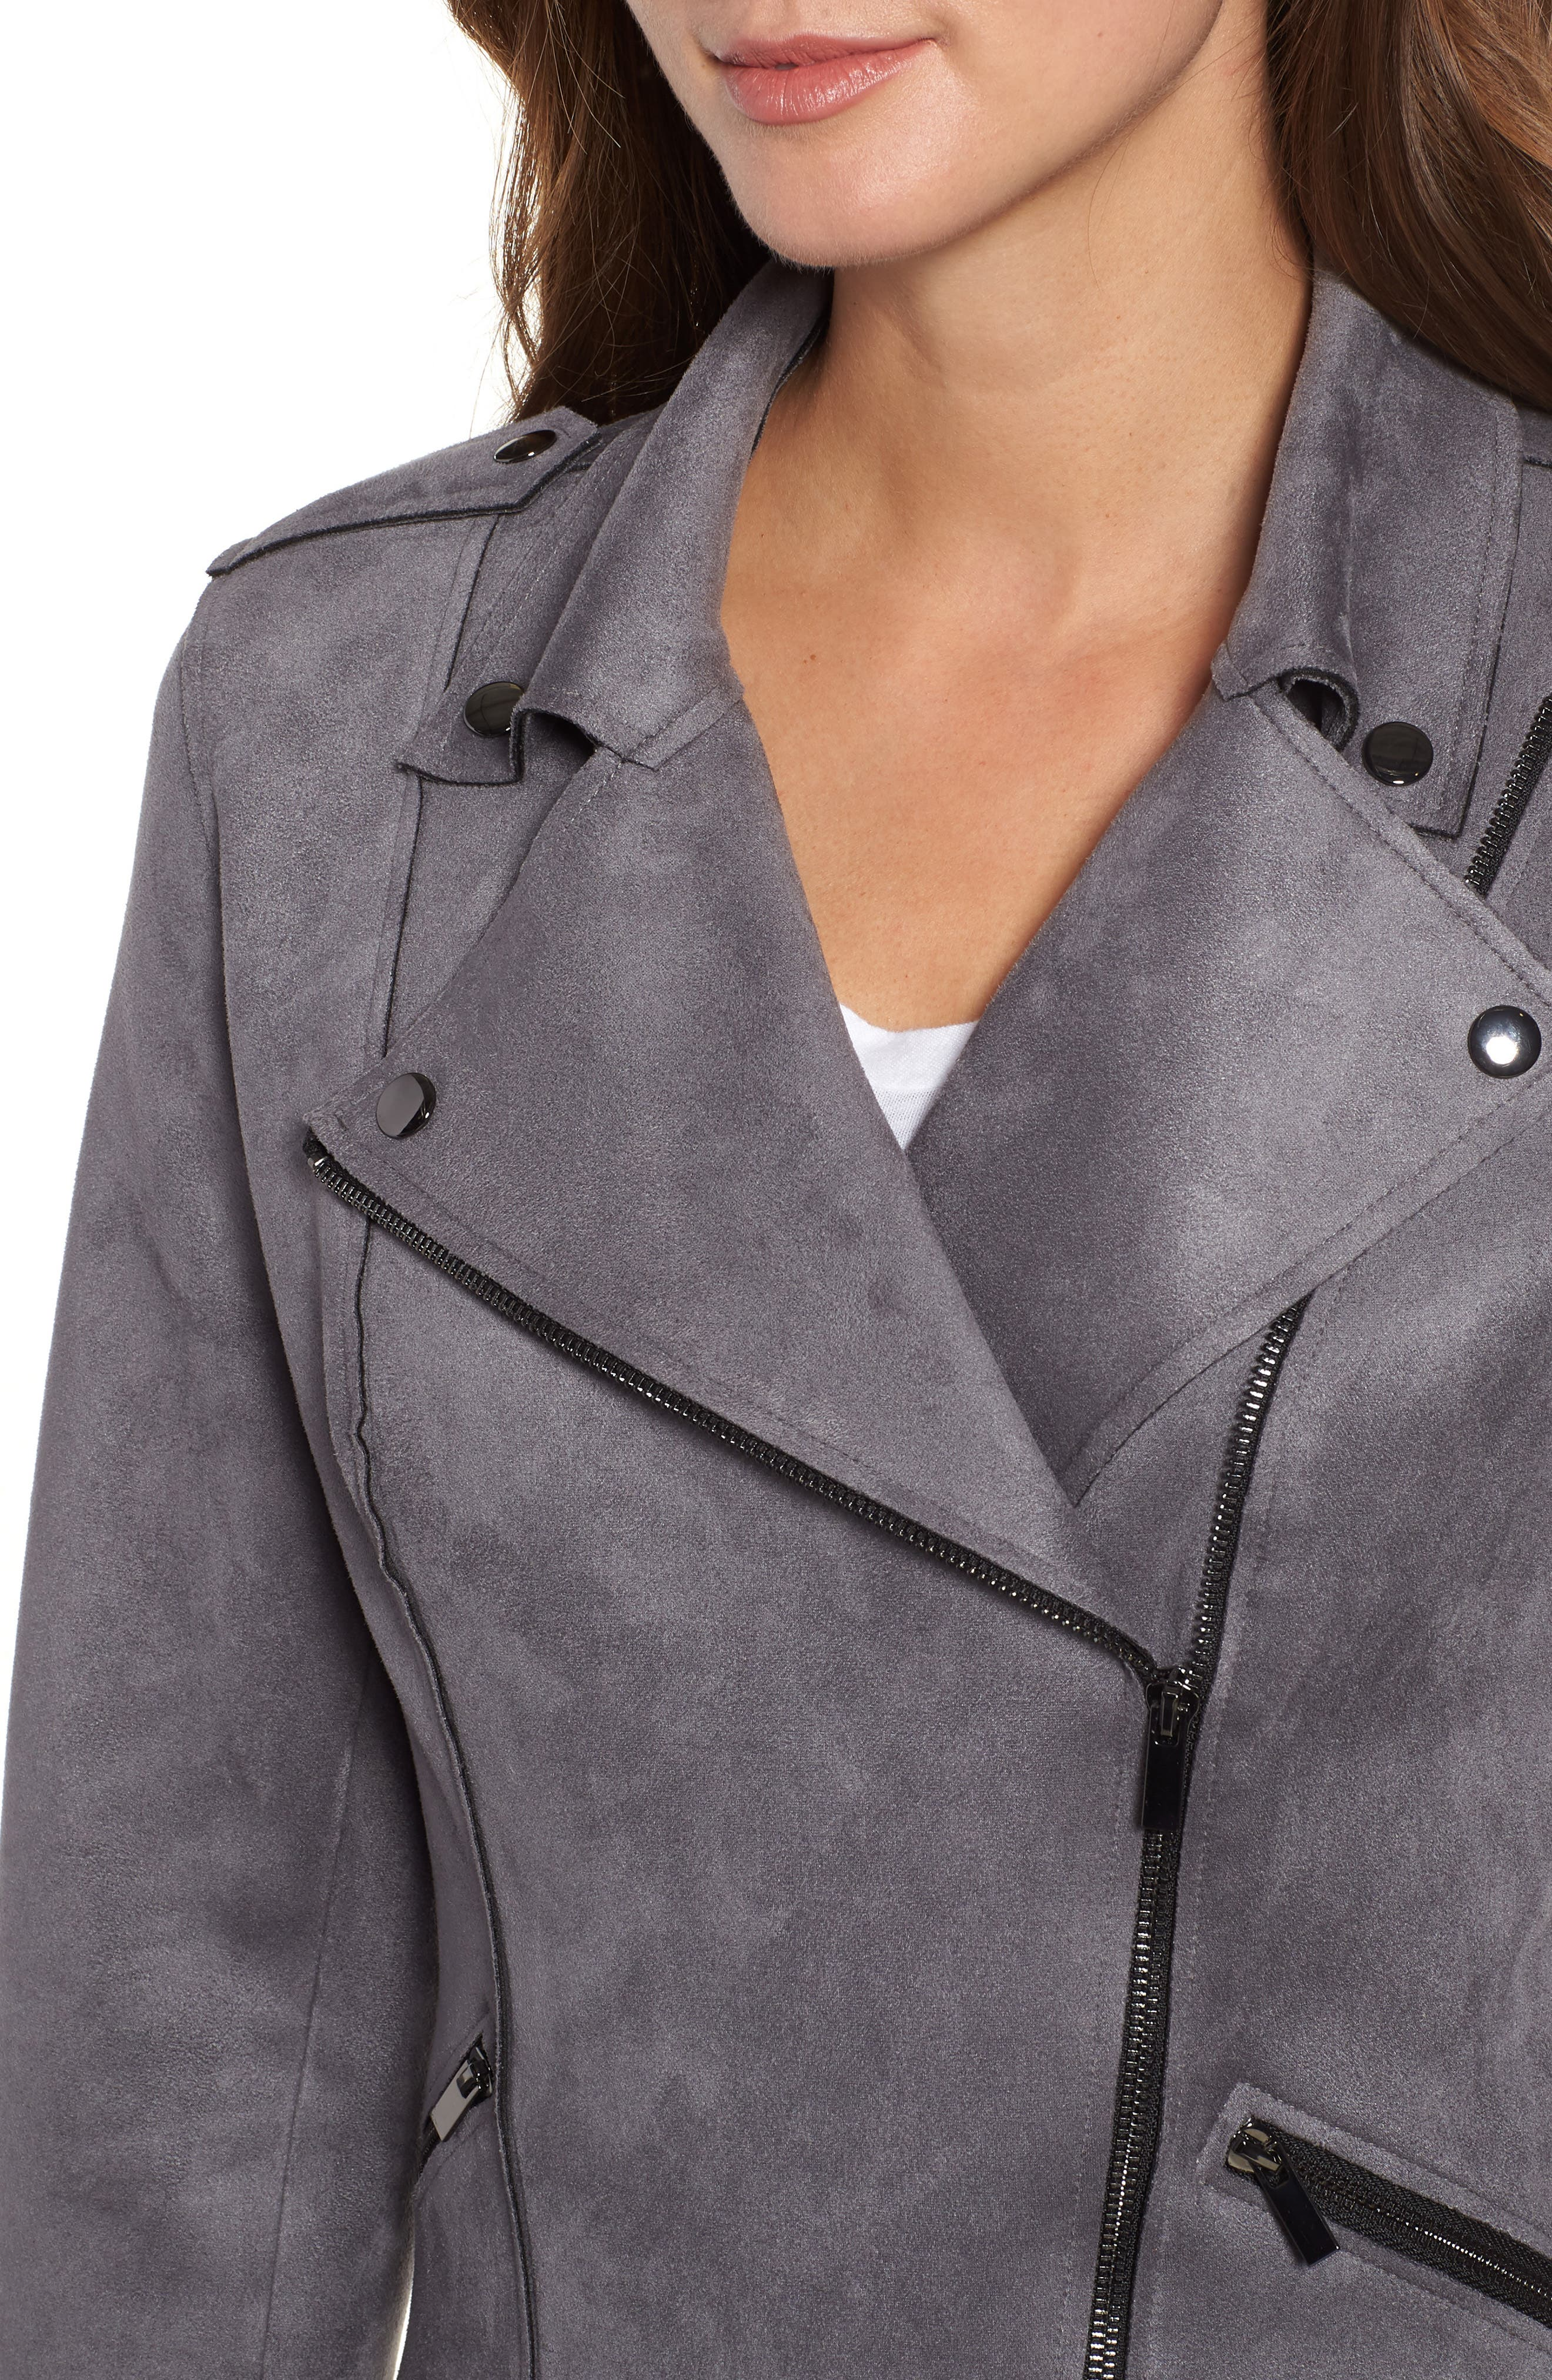 KUT FROM THE KLOTH,                             Haddie Faux Suede Moto Jacket,                             Alternate thumbnail 5, color,                             026